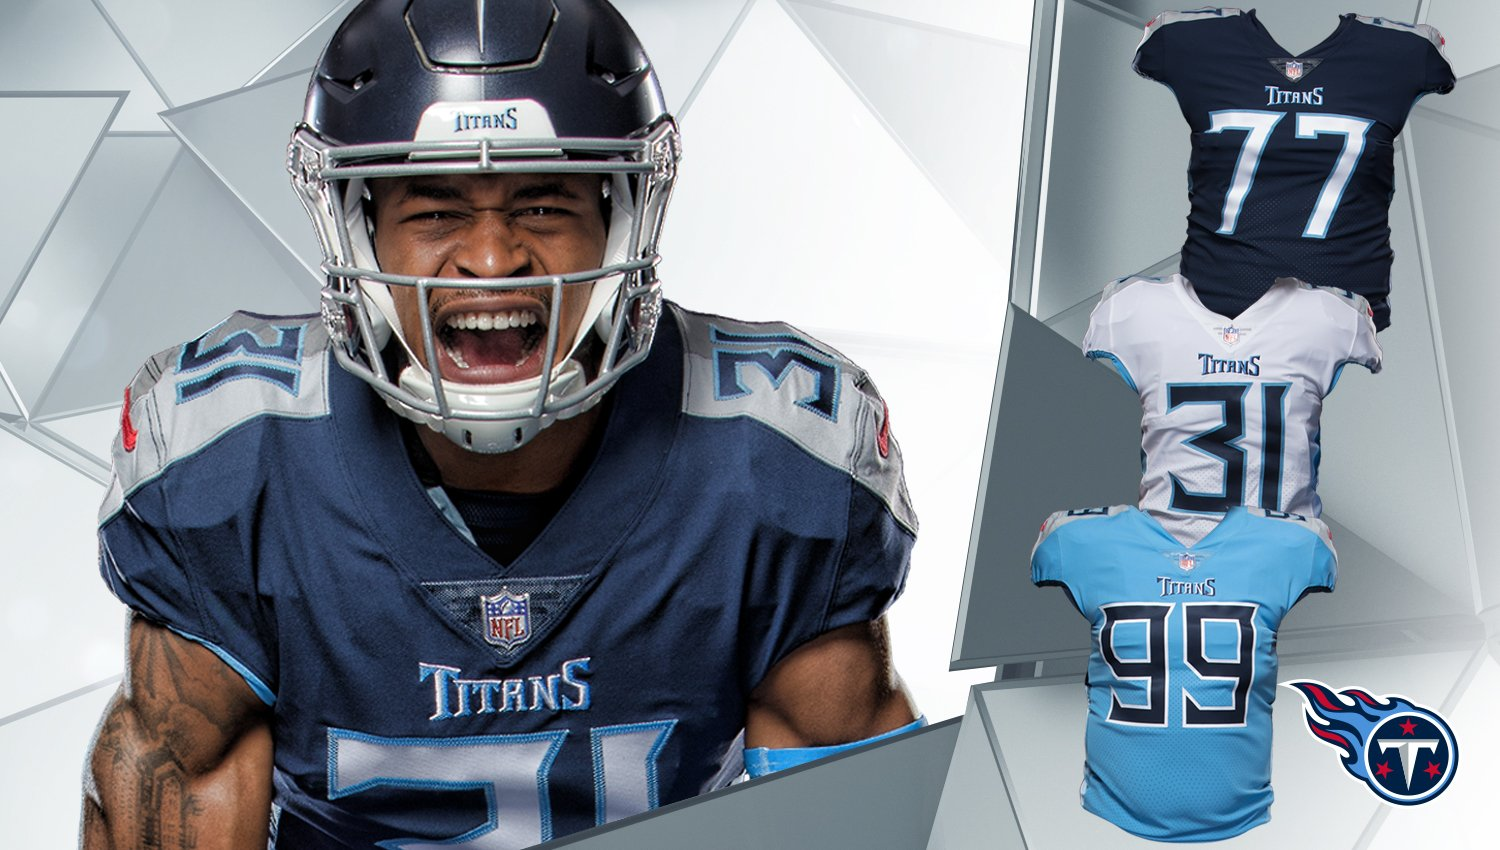 Buy your new Tennessee Titans jersey now!   SHOP �� » https://t.co/GNfXFyuR9P https://t.co/DSwRTHRFSH